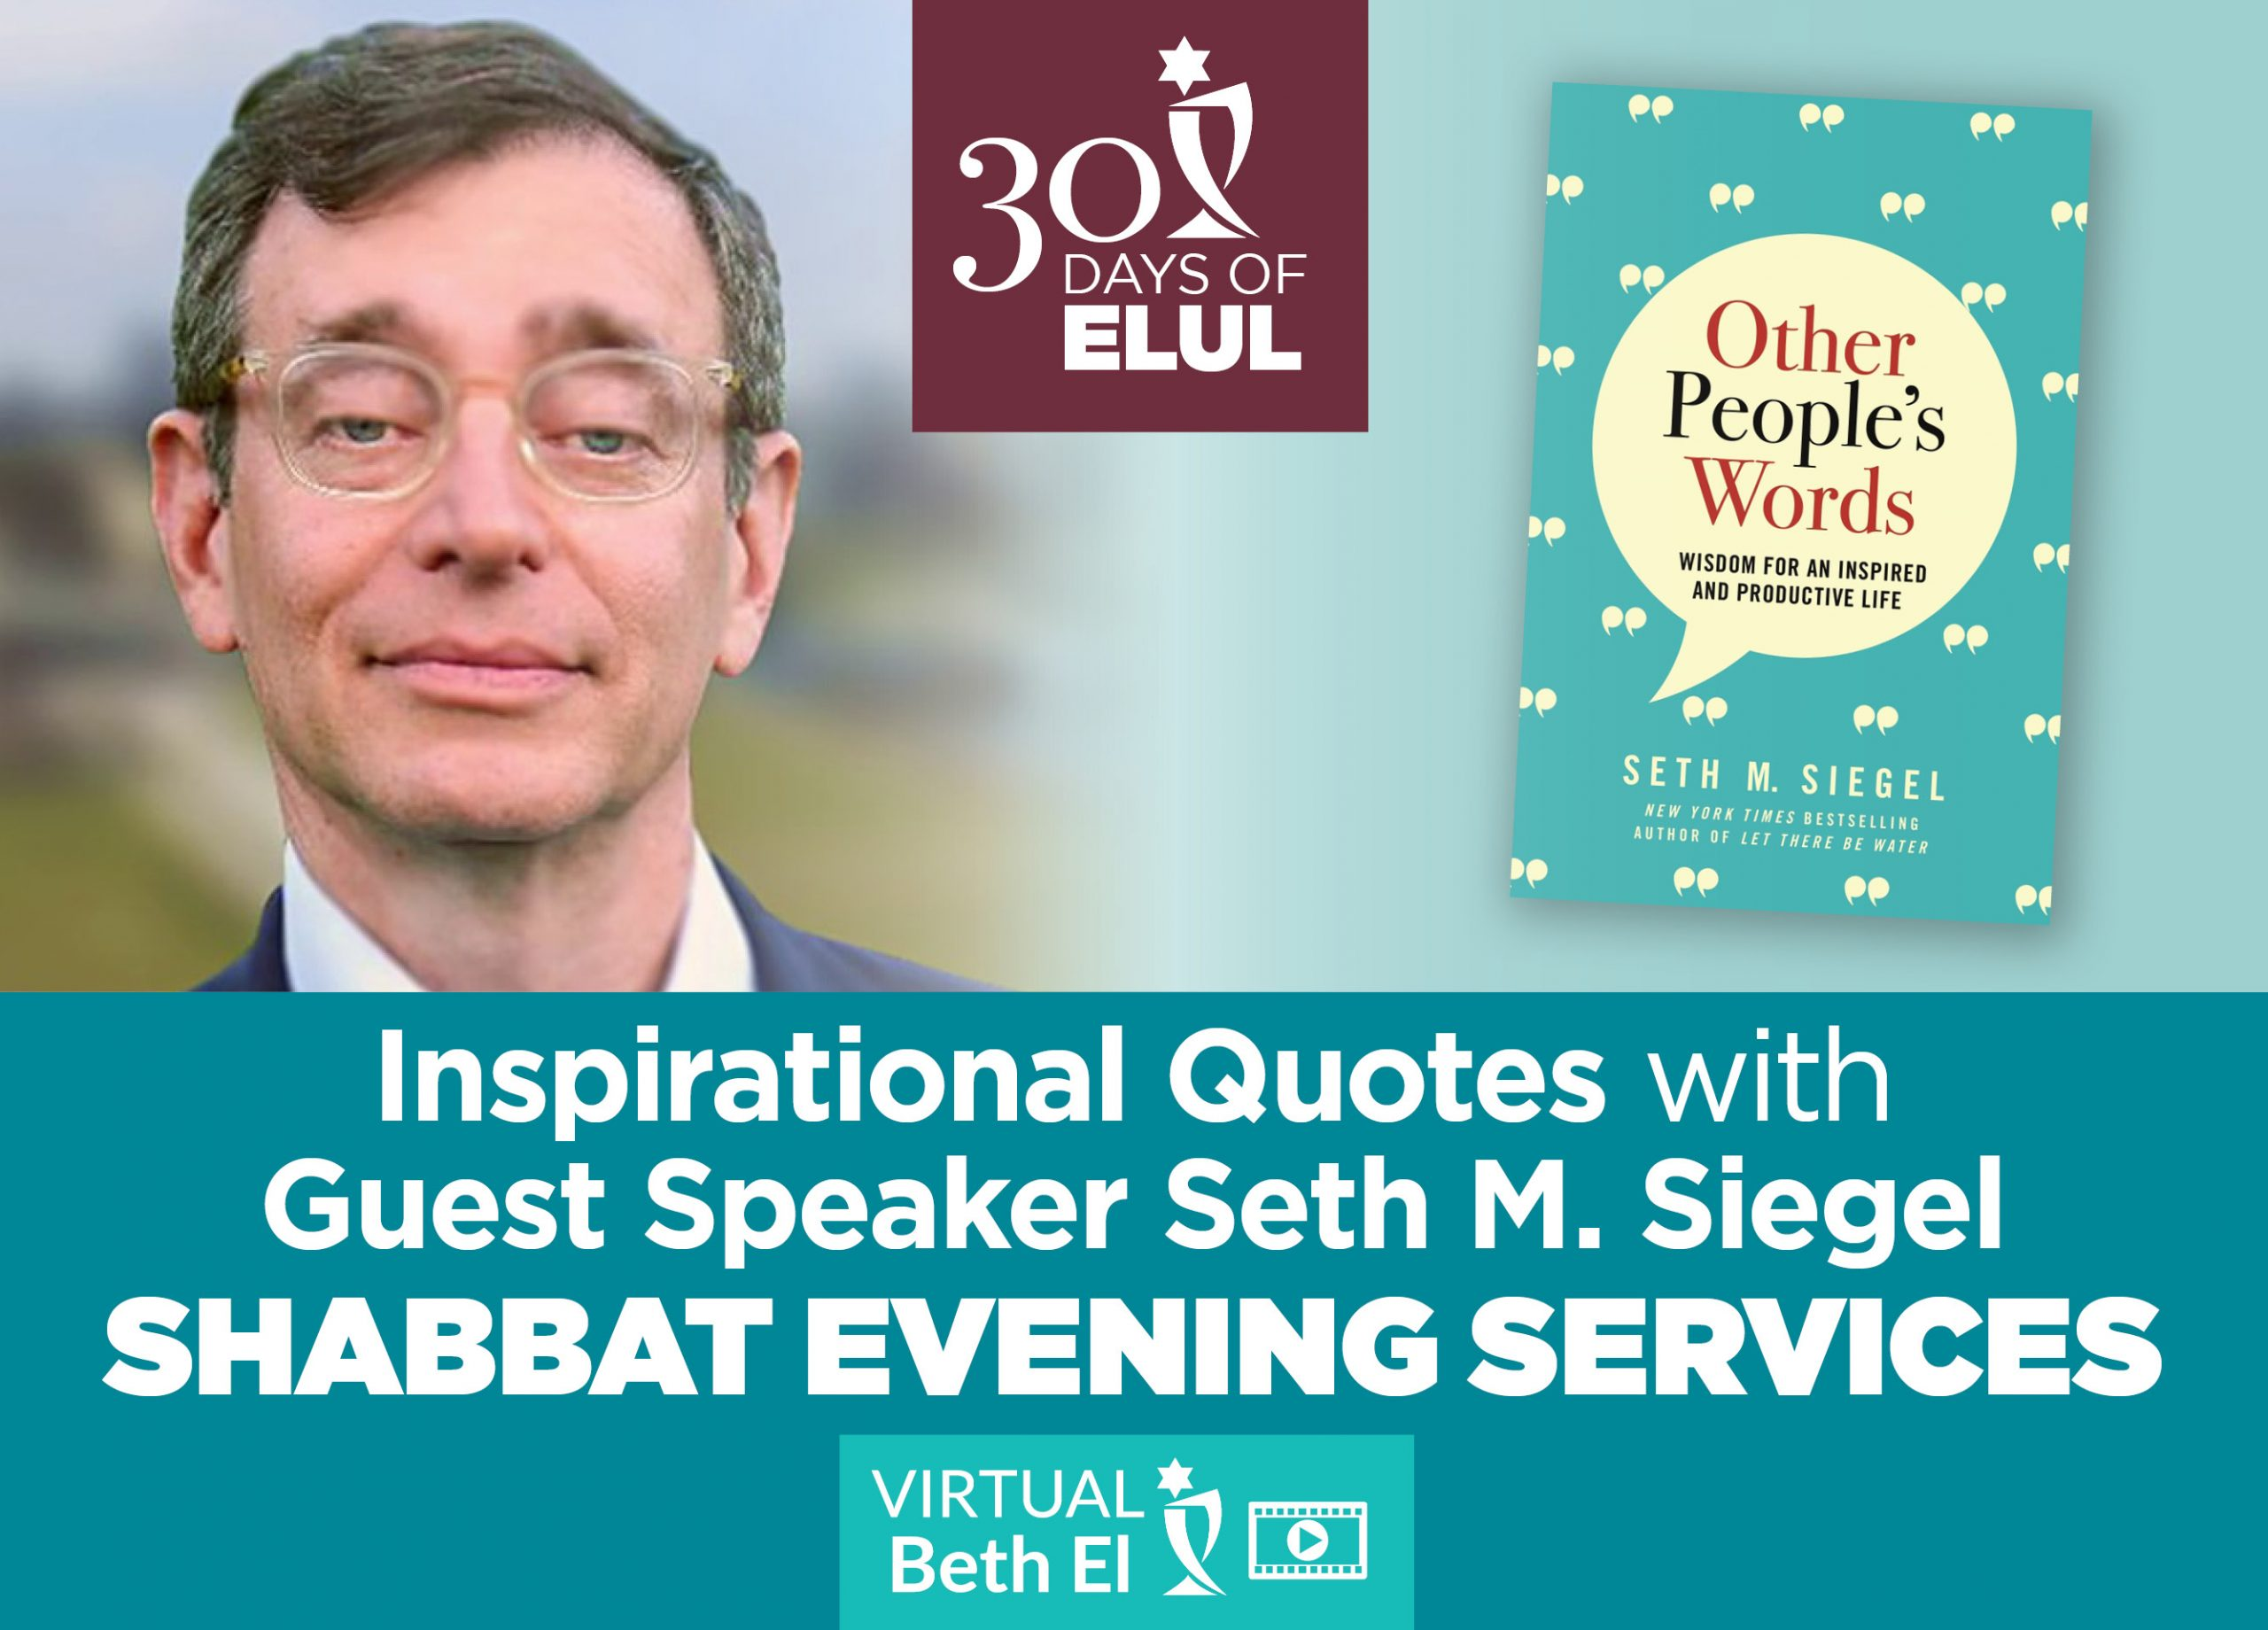 Shabbat Evening Services with Seth Siegel: Inspirational Quotes, event graphic of Temple Beth El of Boca Raton